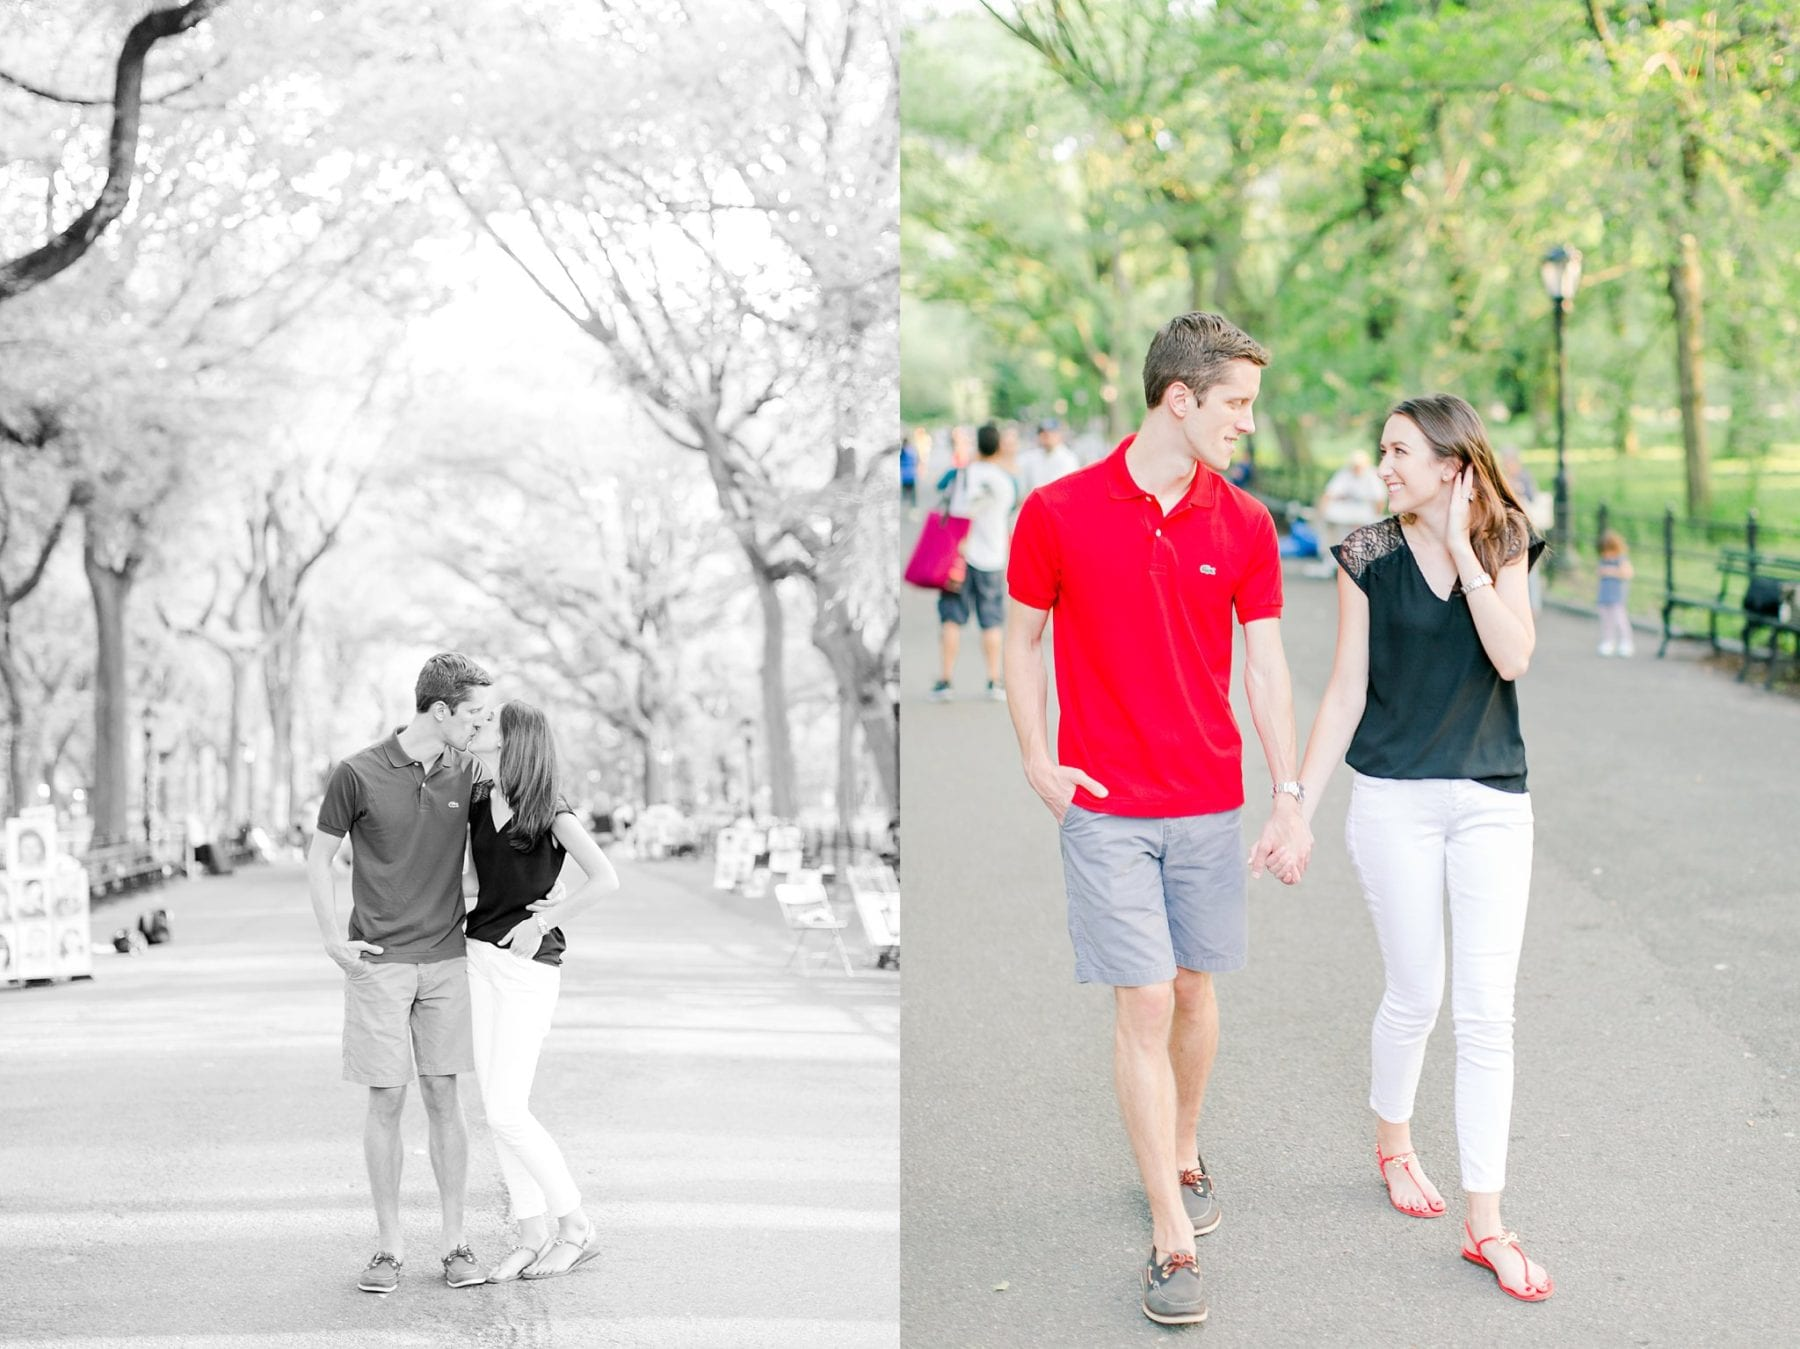 West Village Central Park Engagement Photos NYC Wedding Photographer Megan Kelsey Photography-225.jpg